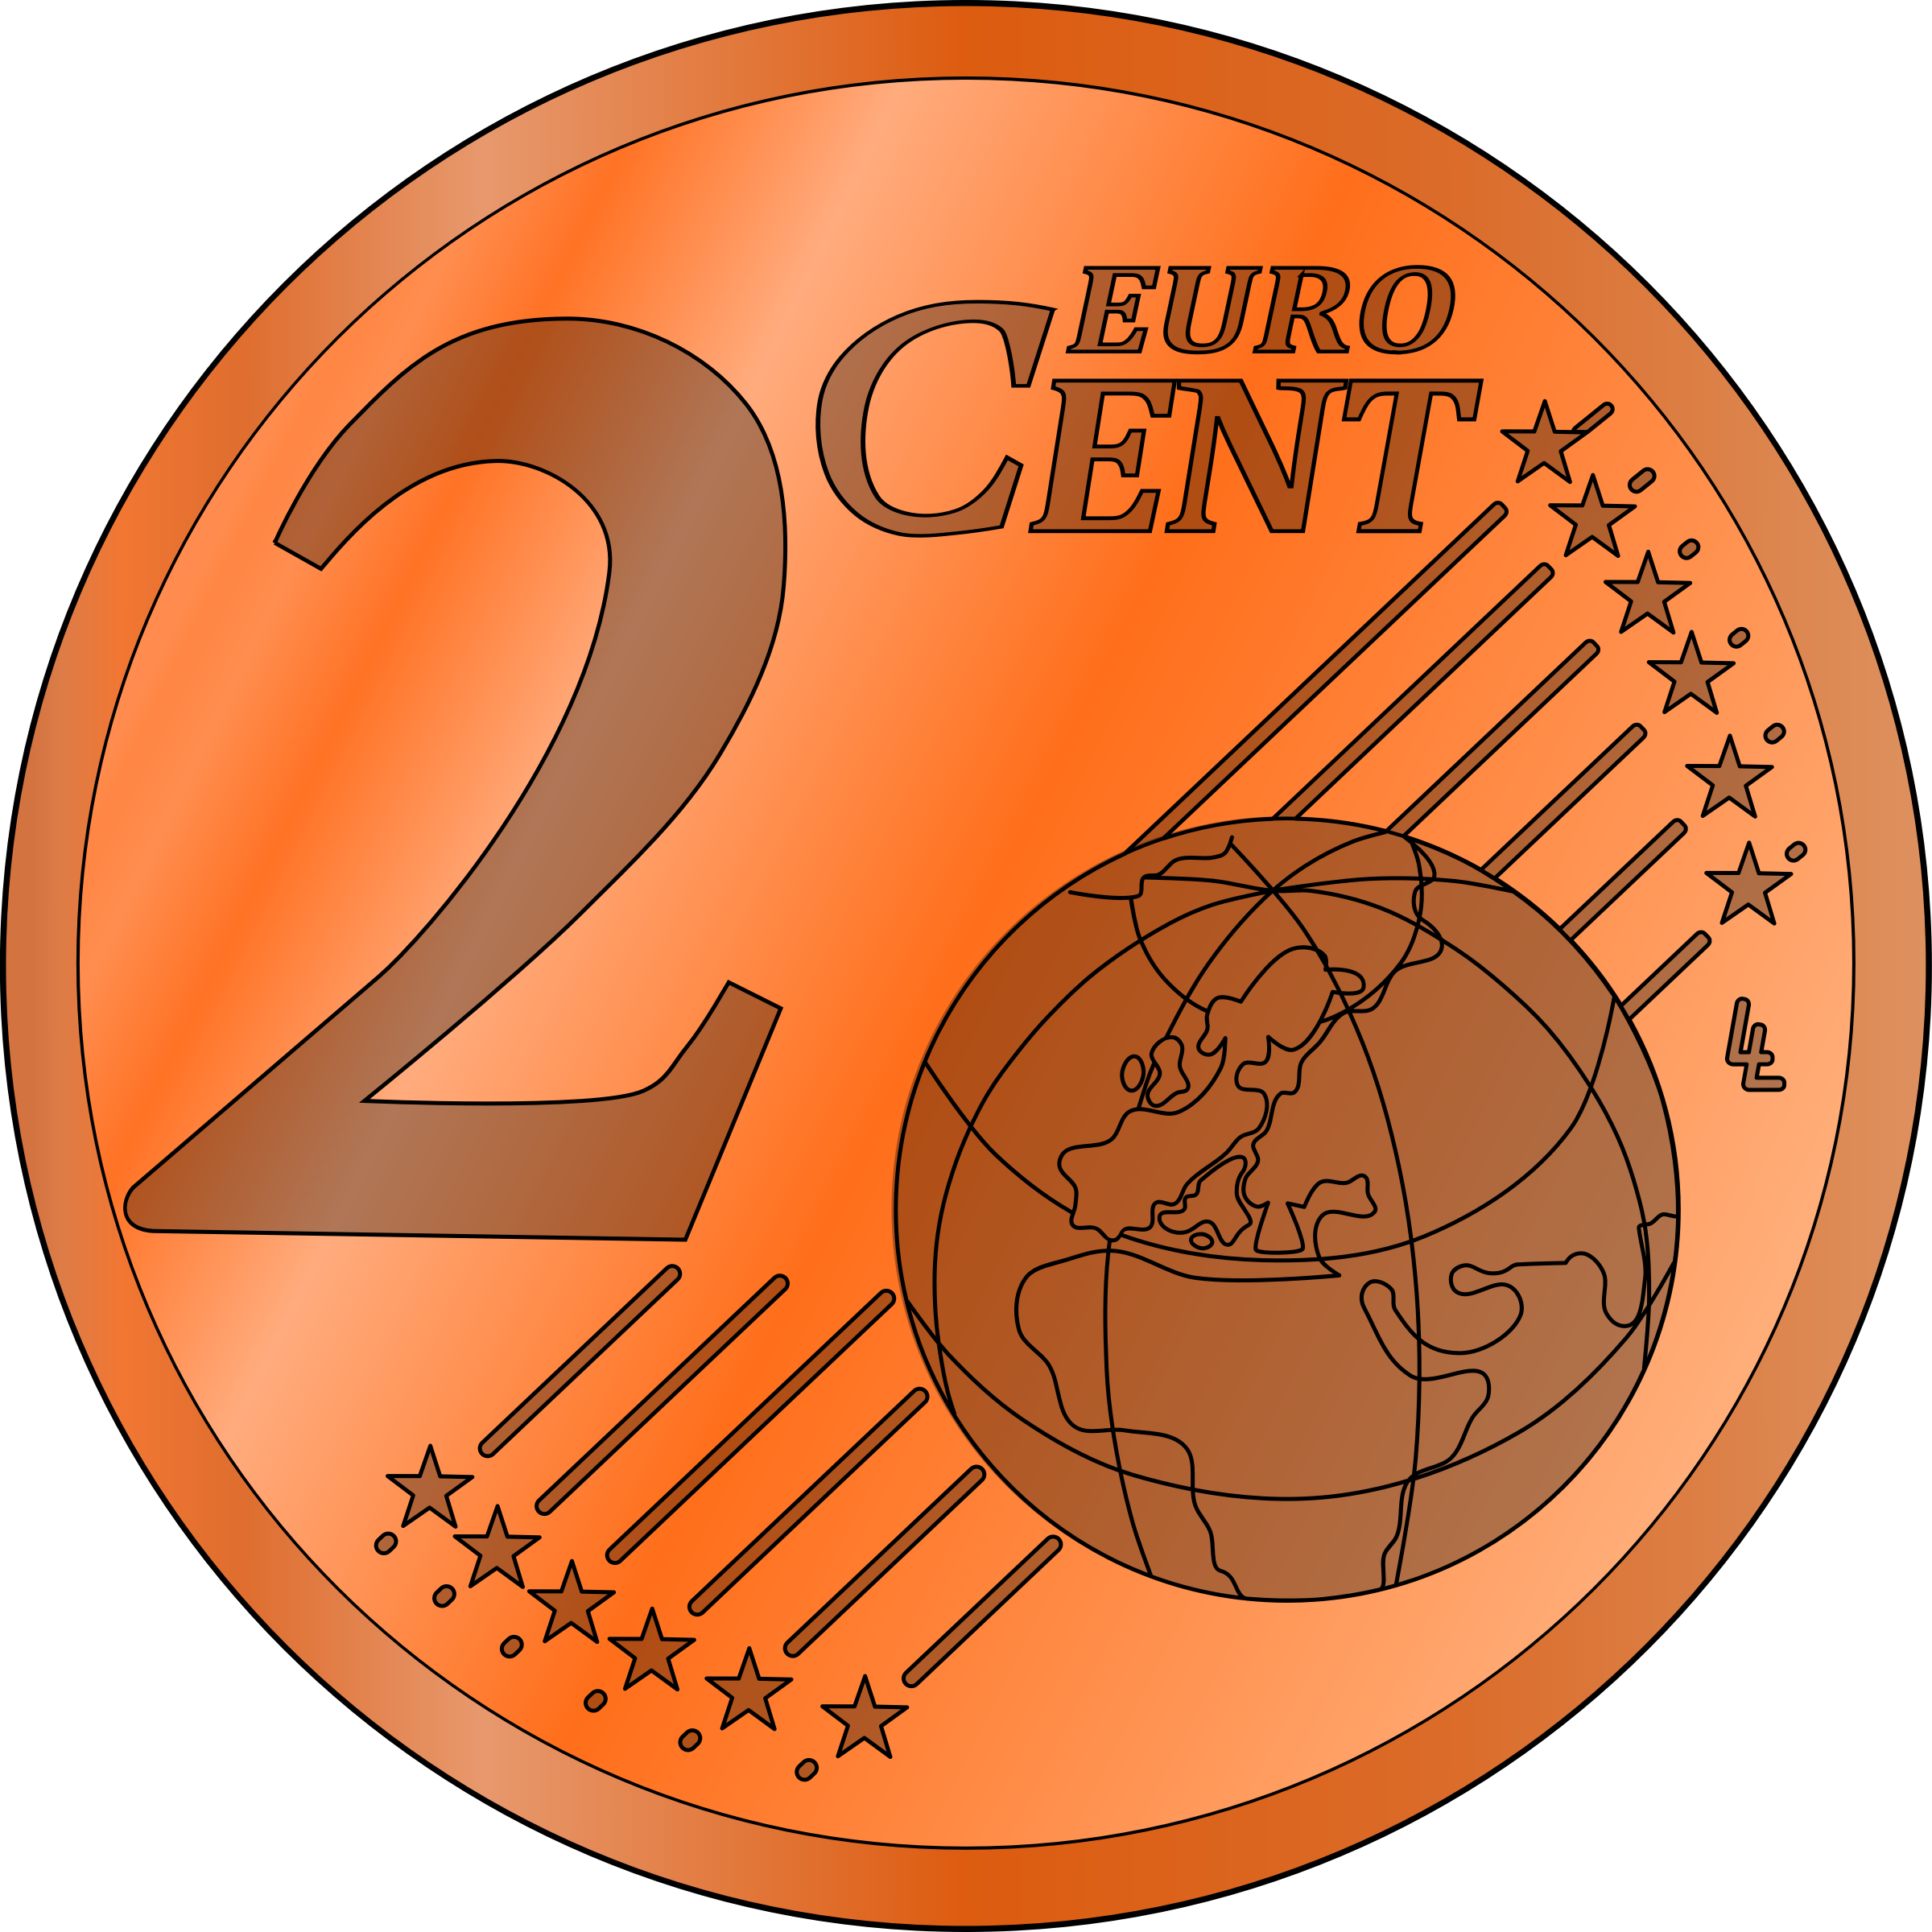 2 Cents Clipart.